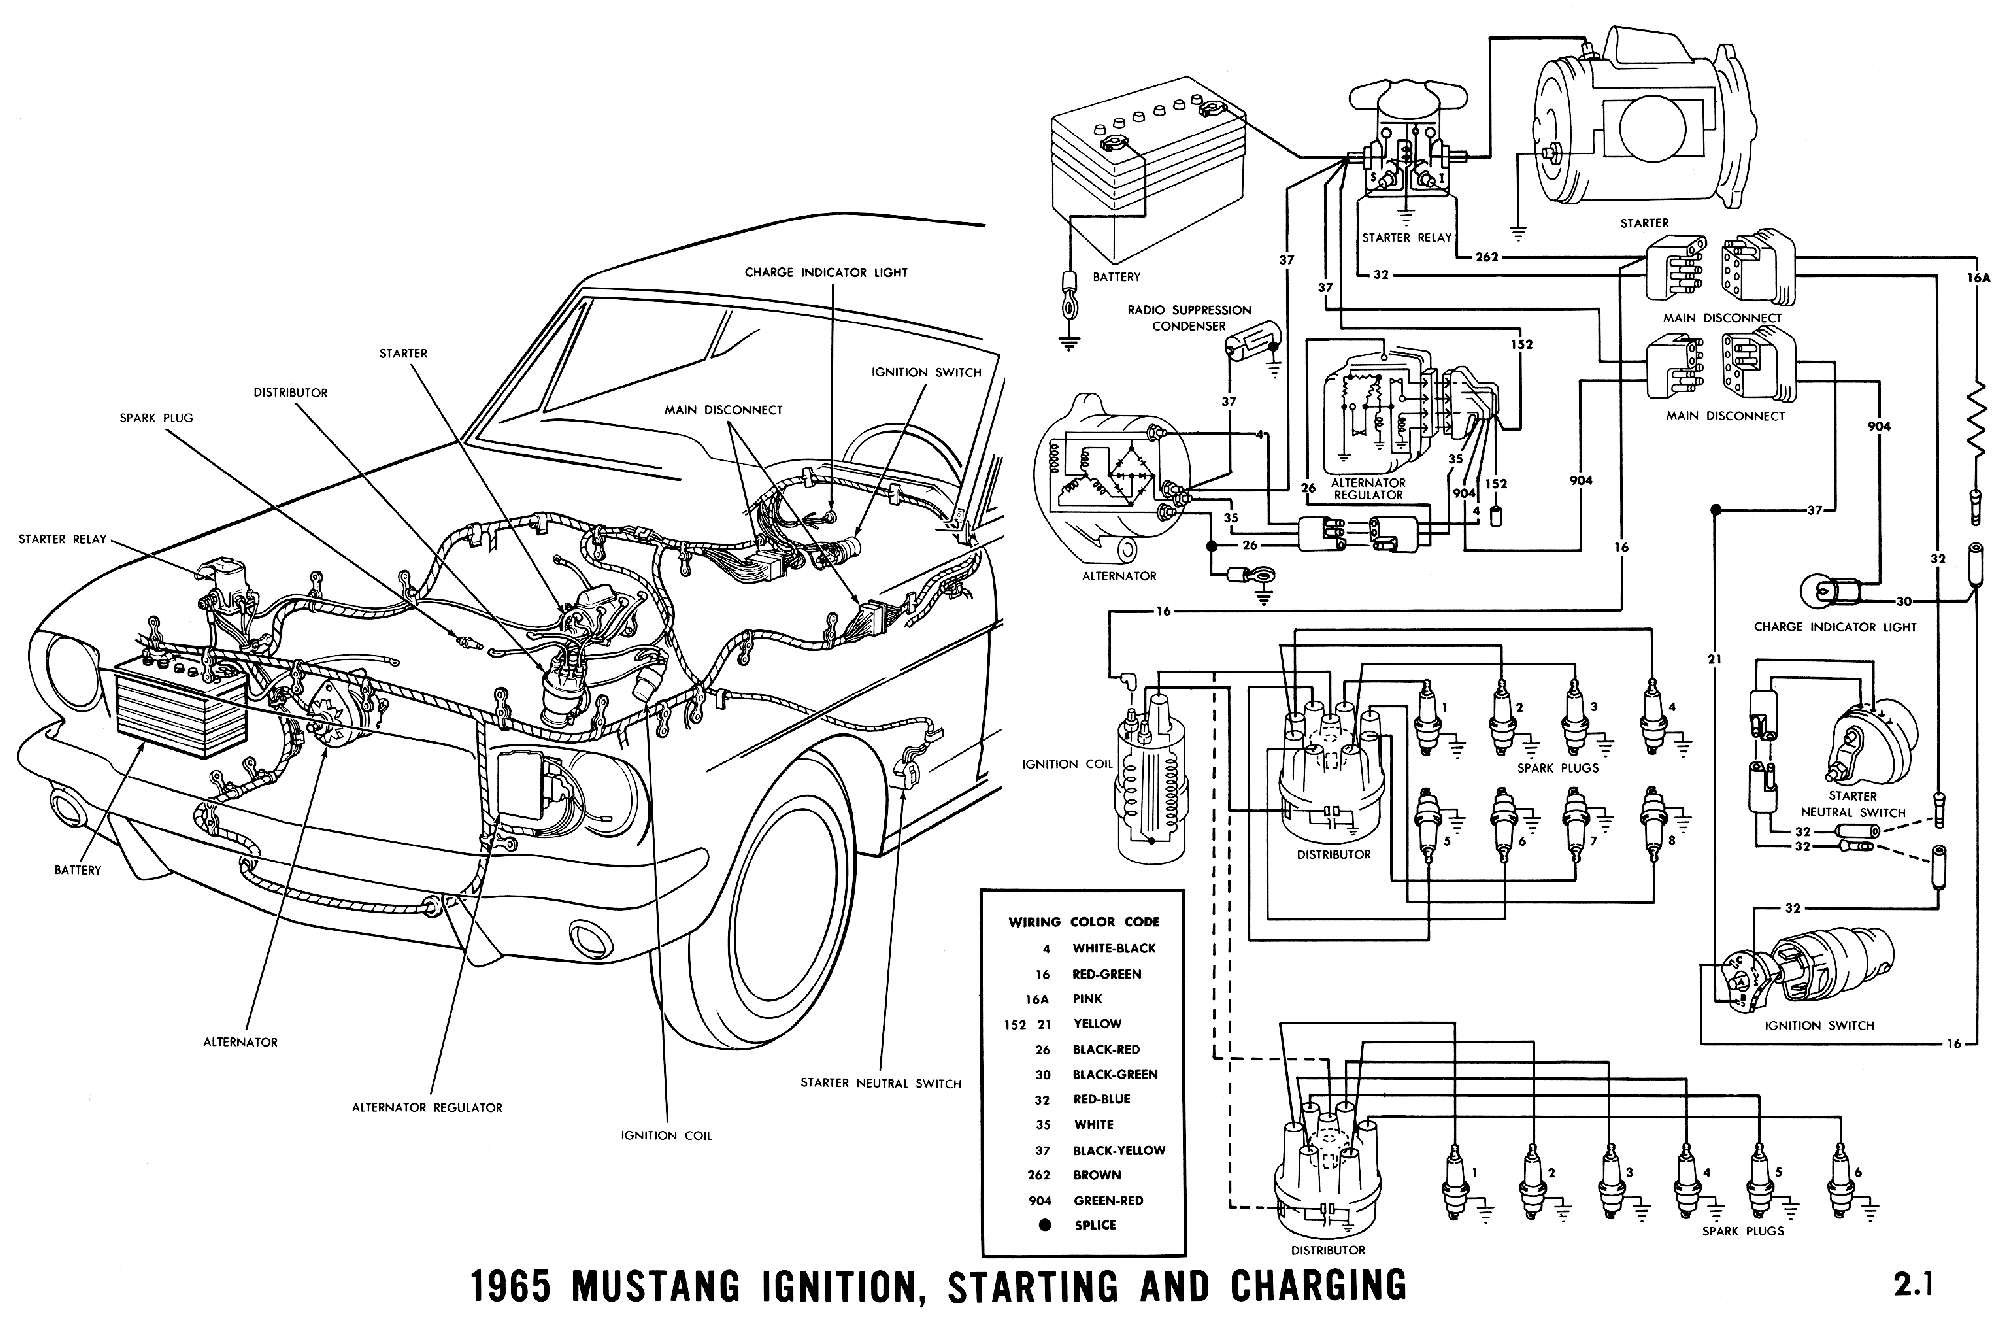 Headlight Wiring Diagram 1969 Mustang, Headlight, Free